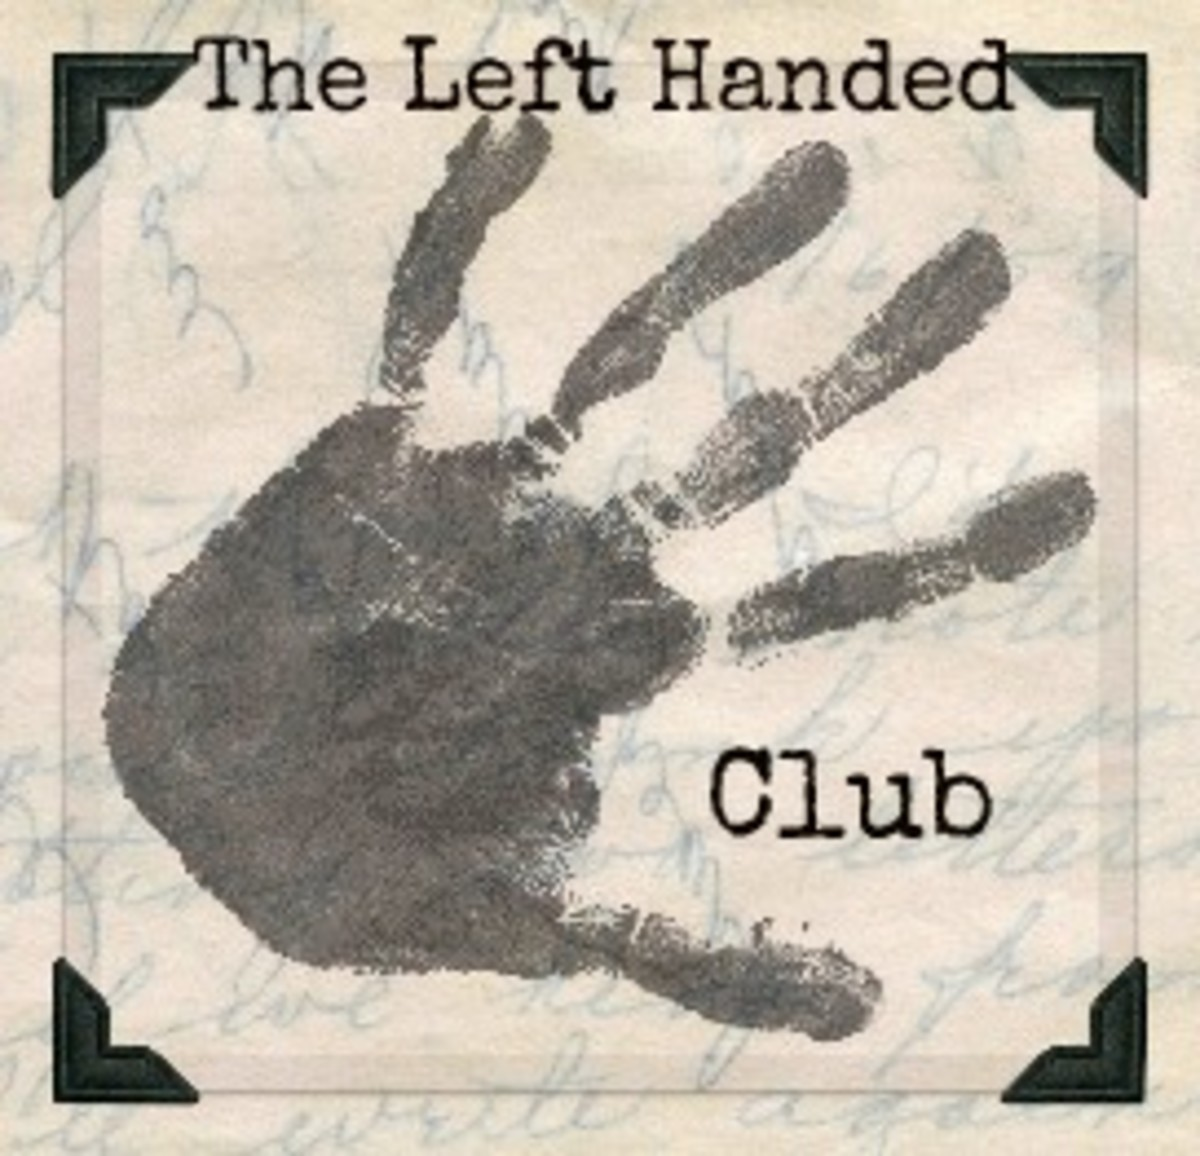 Left Handed Facts and Left Handed Products